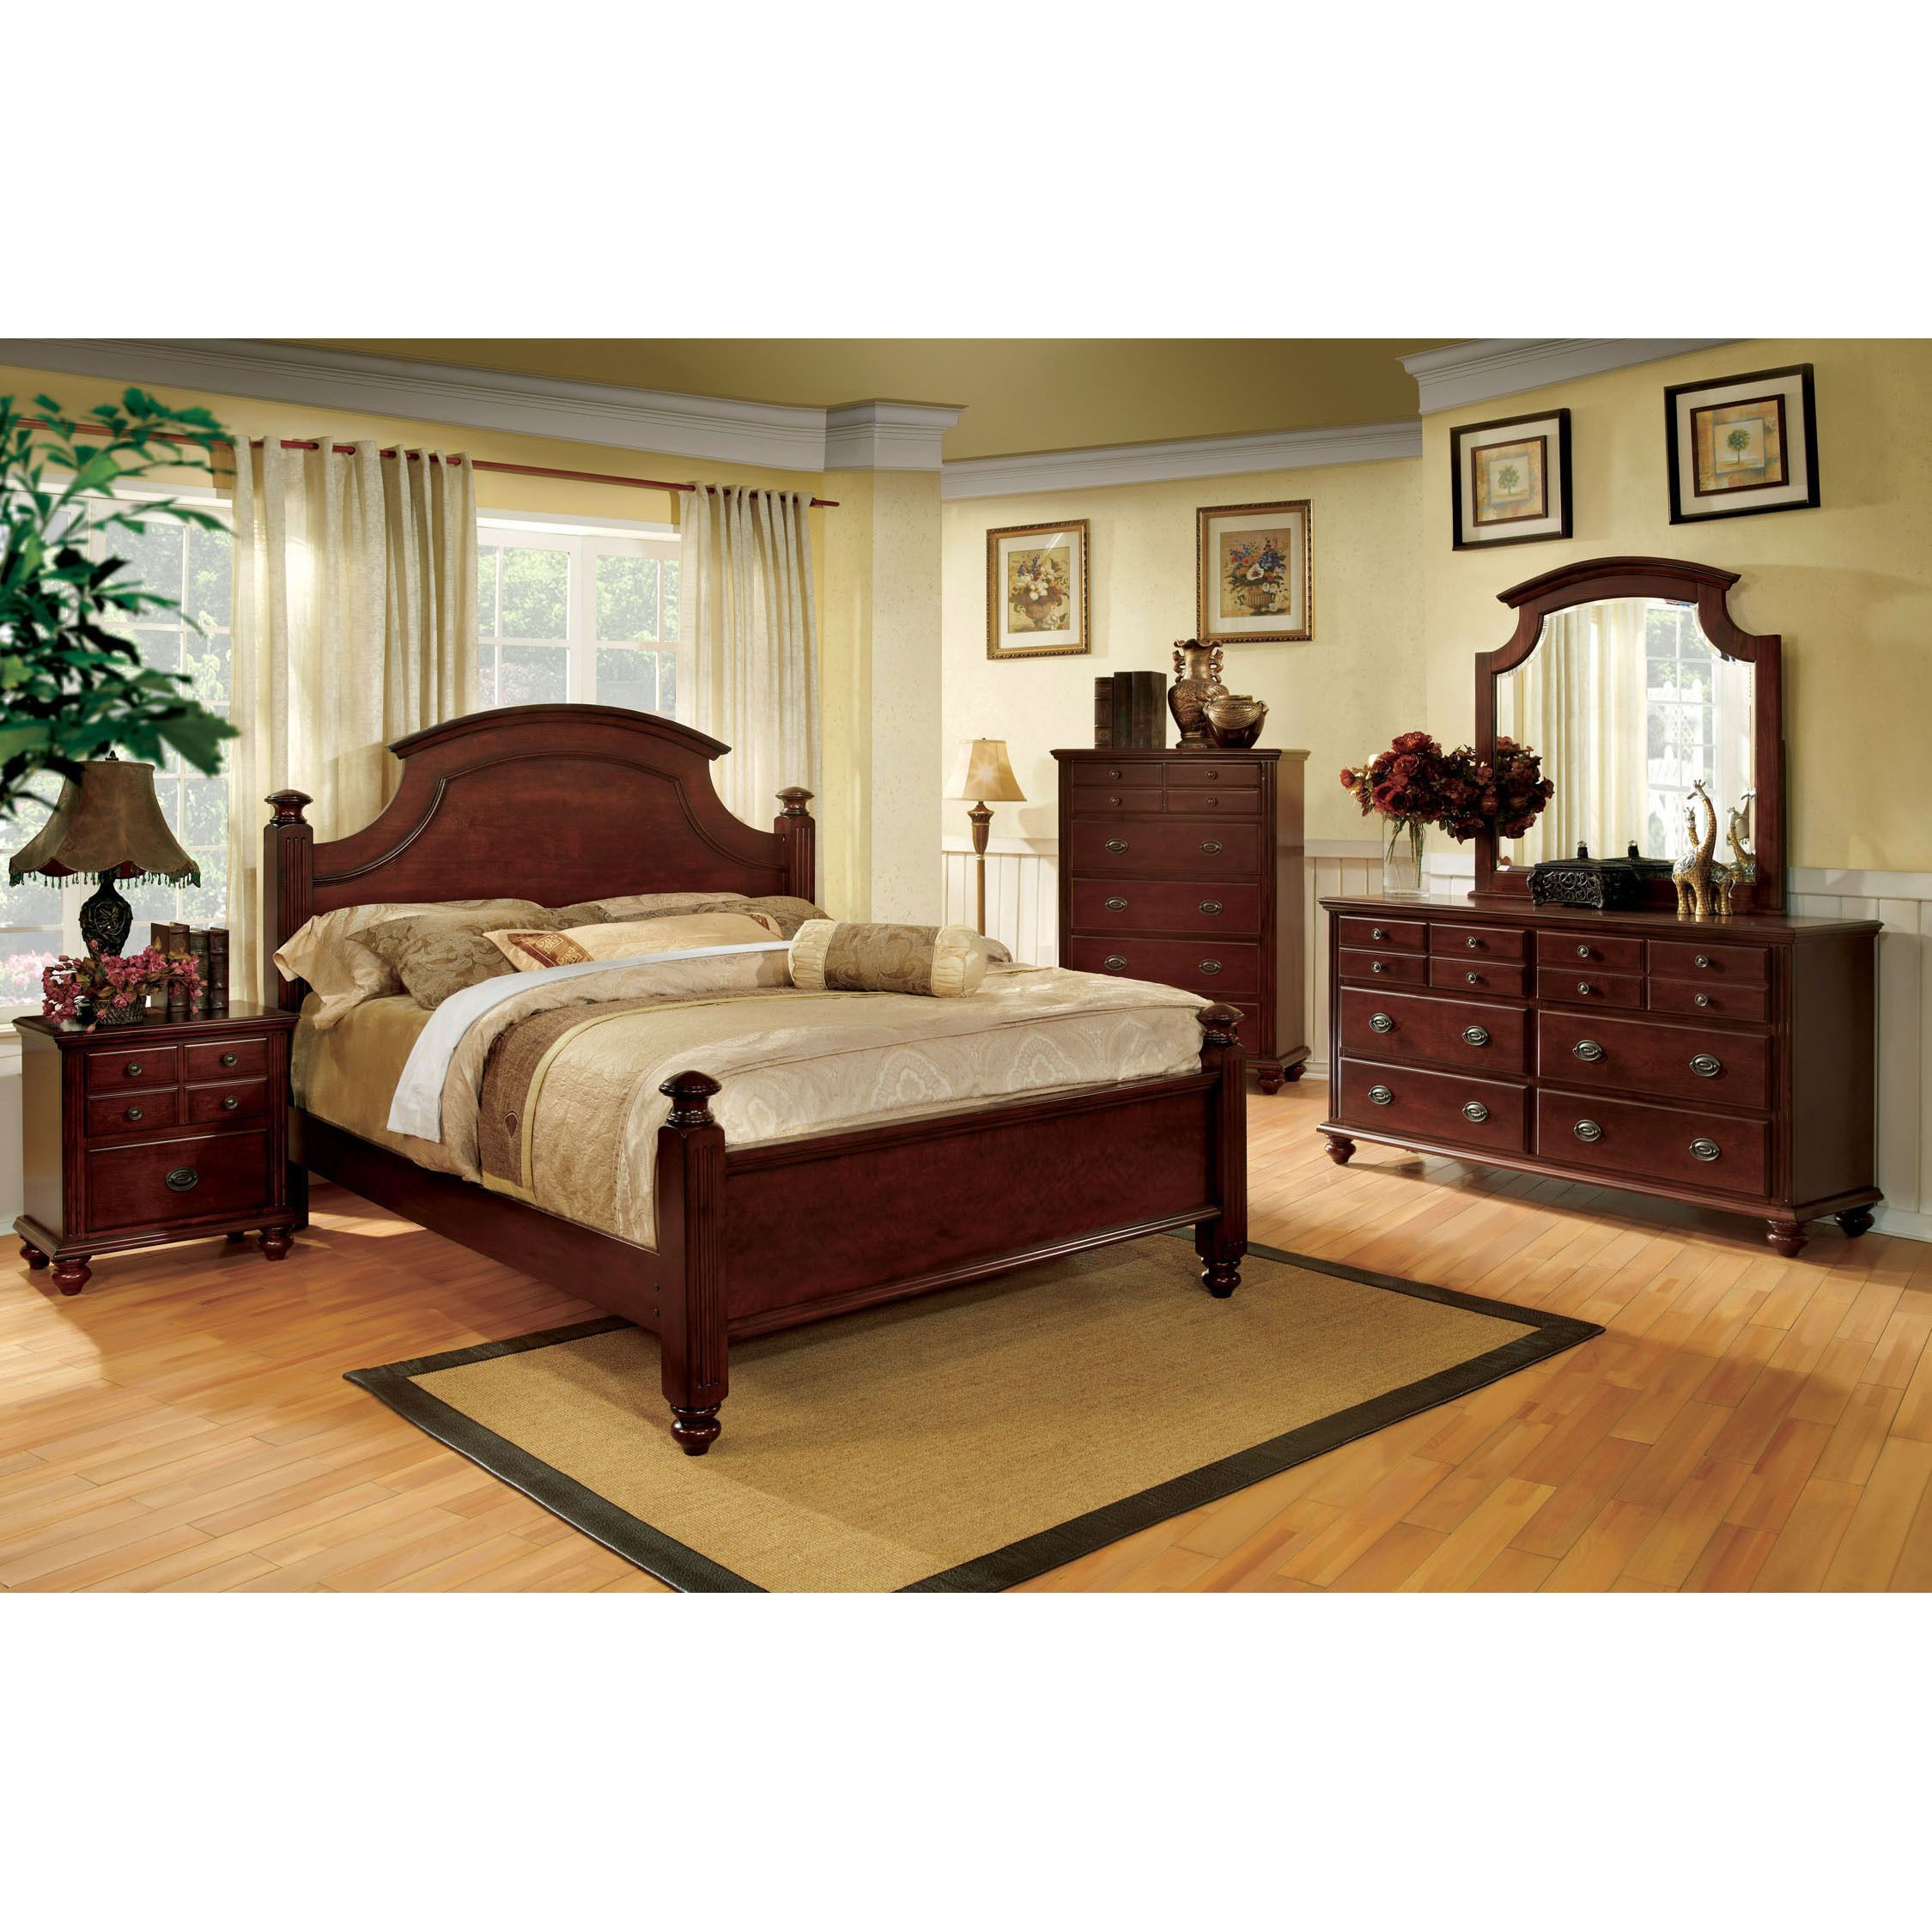 Furniture of america european style piece cherry red poster